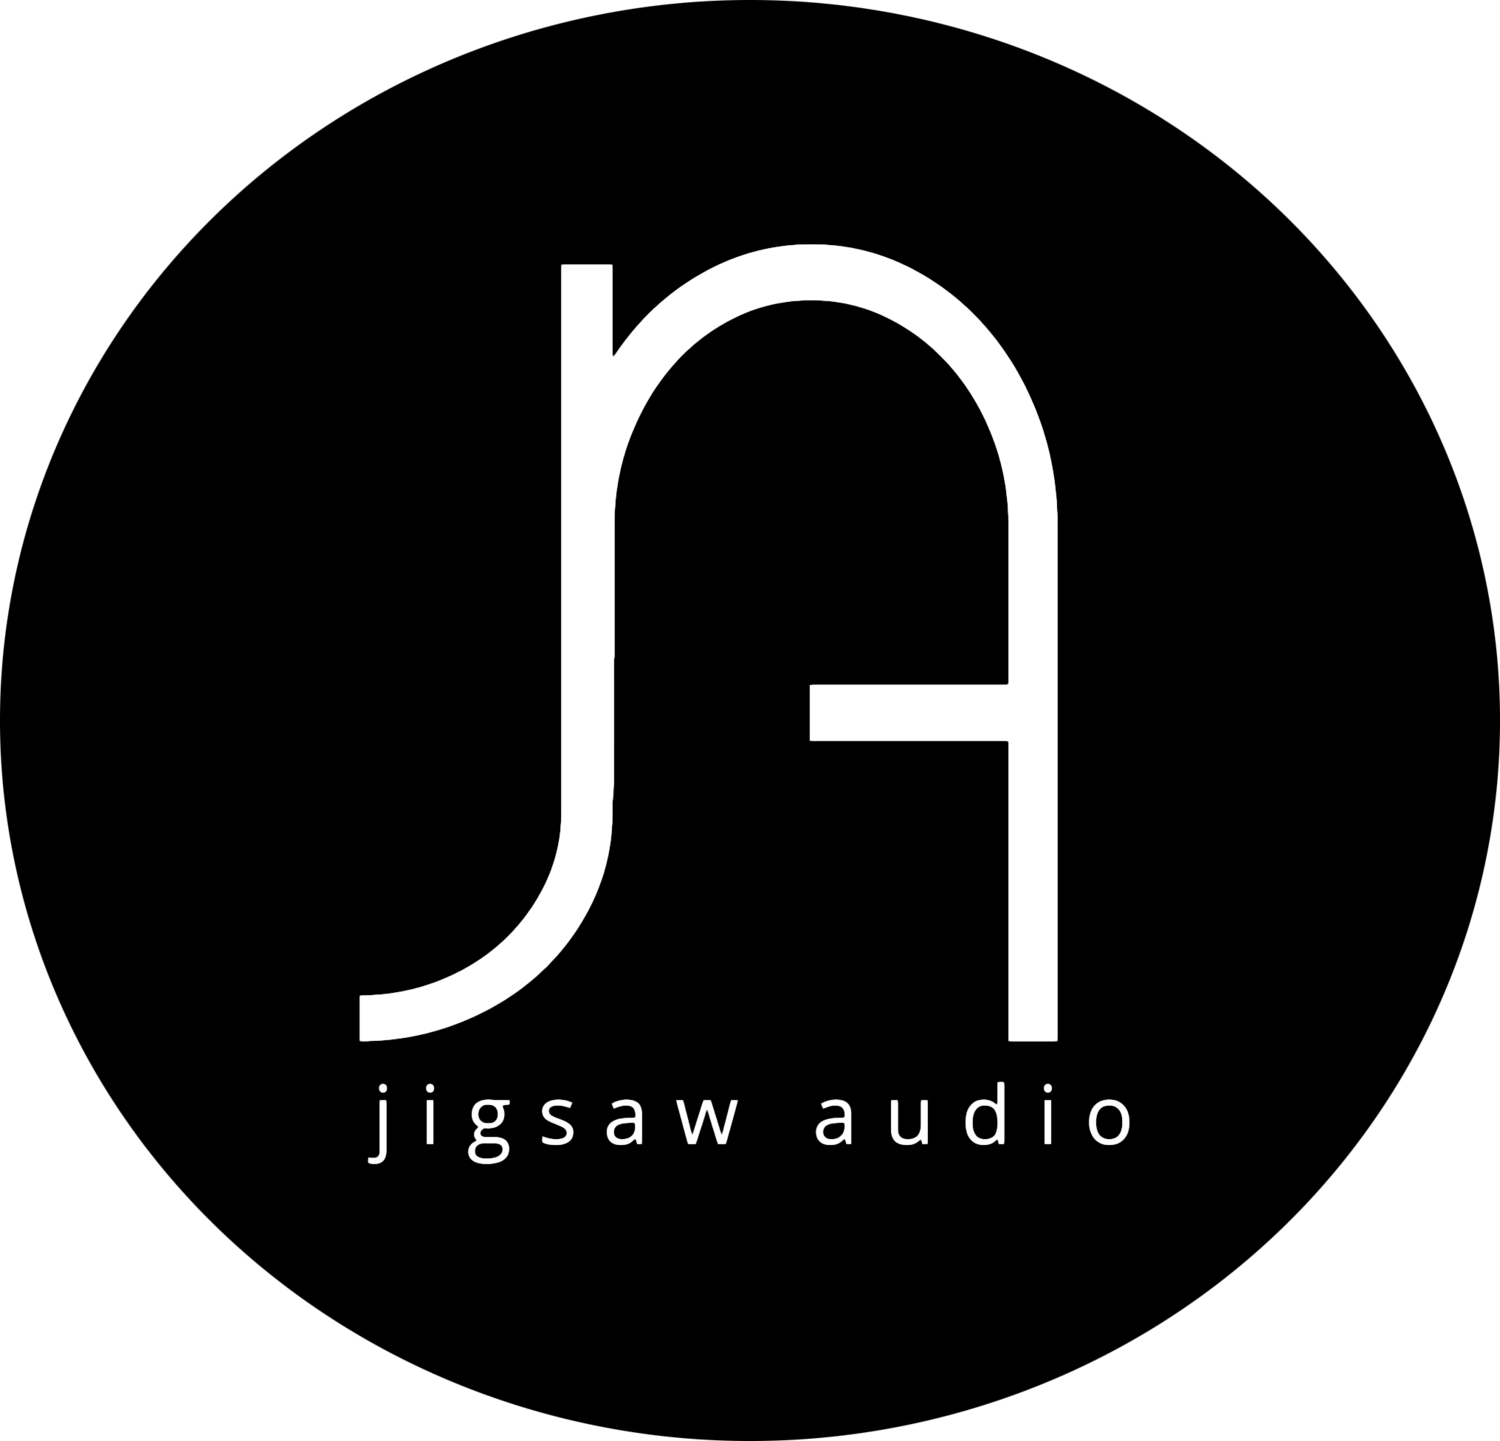 Jigsaw Audio